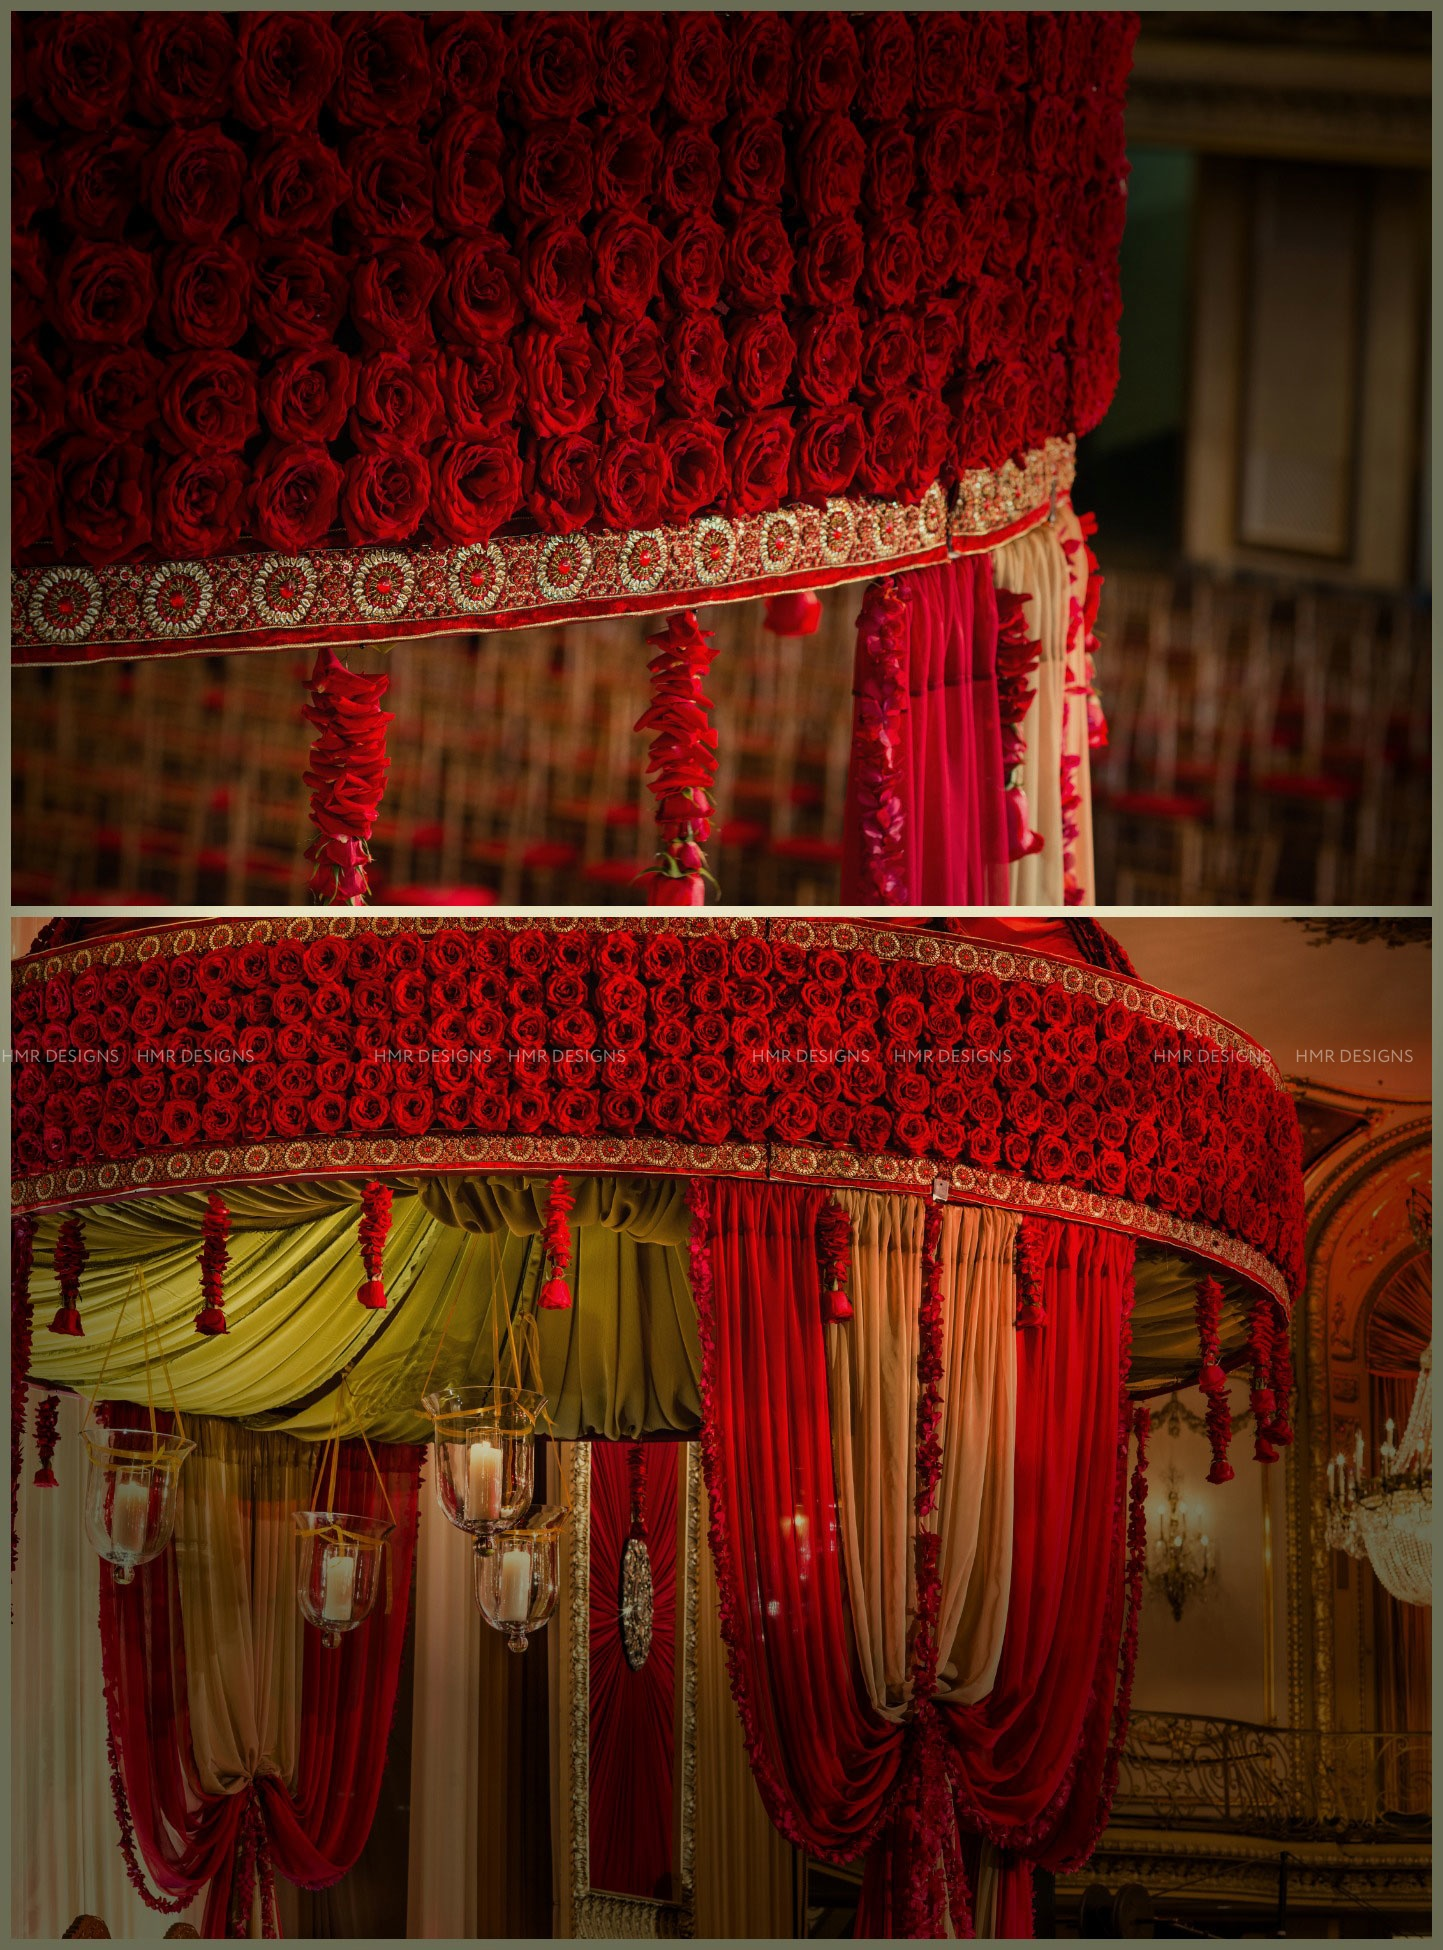 Floral canopy of red roses by HMR Designs